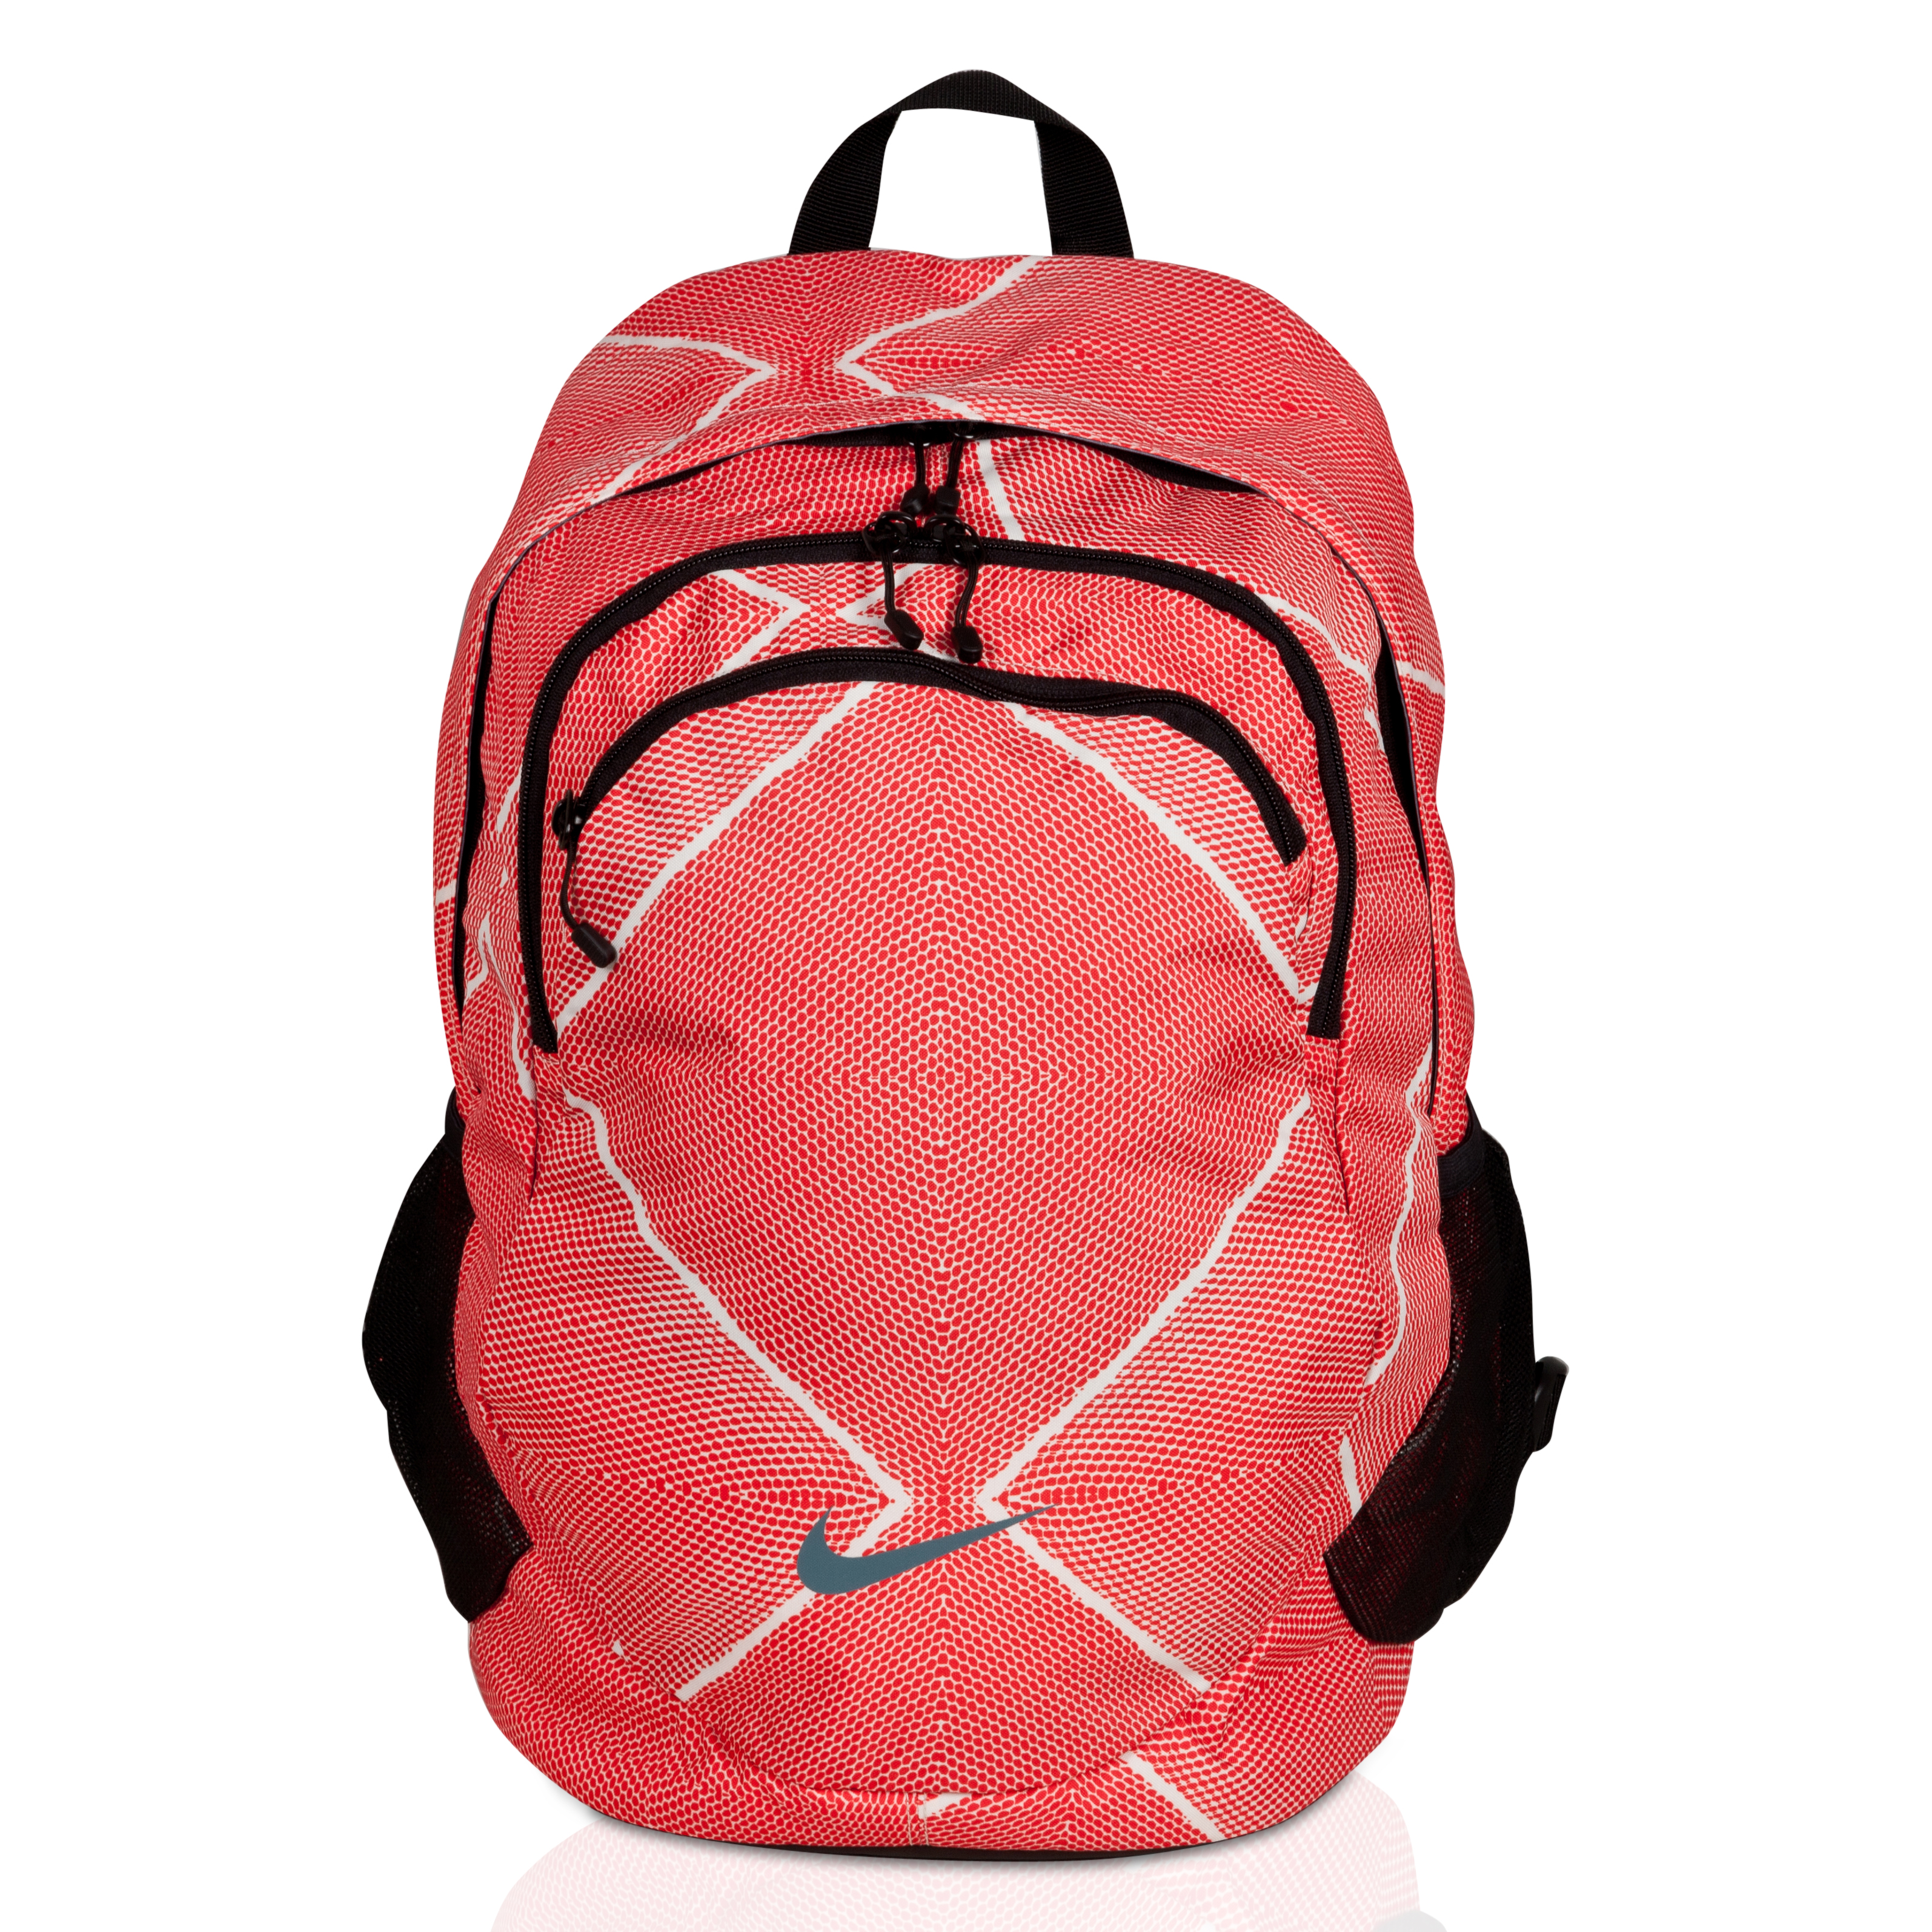 Nike Backpack For Her - Light Bone/Black/(Hasta) Print